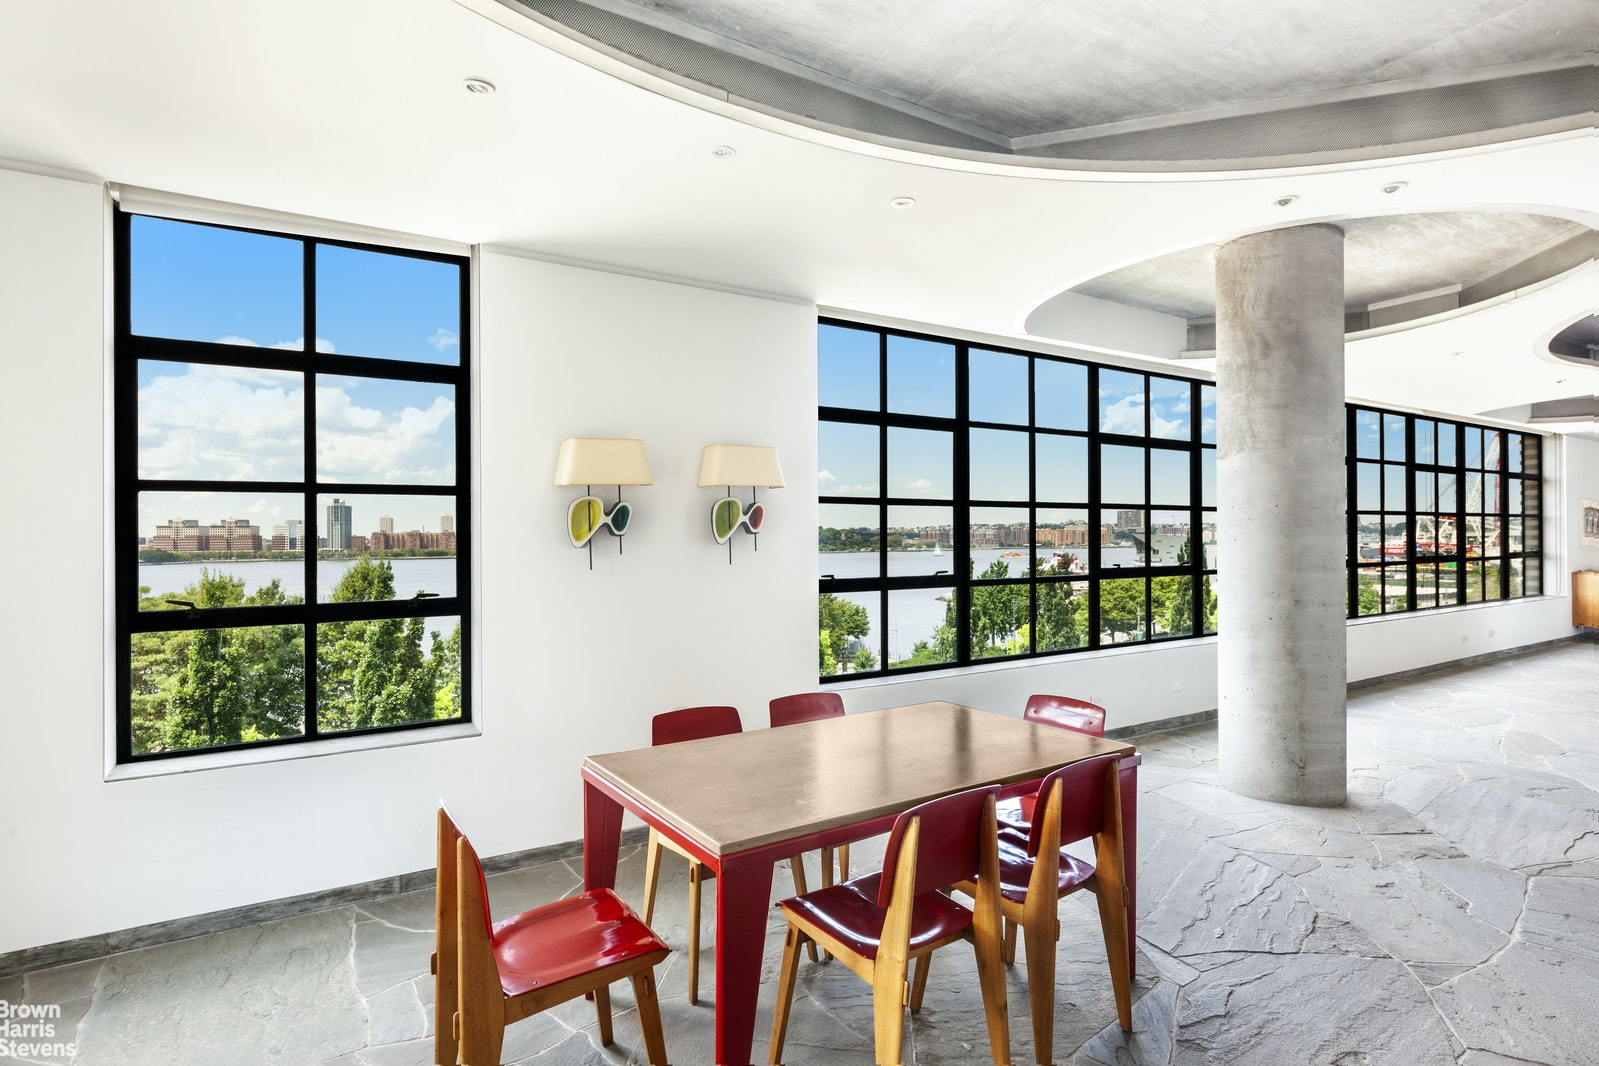 495 West Street 5, West Village, NYC, 10014, $7,495,000, Property For Sale, Halstead Real Estate, Photo 4